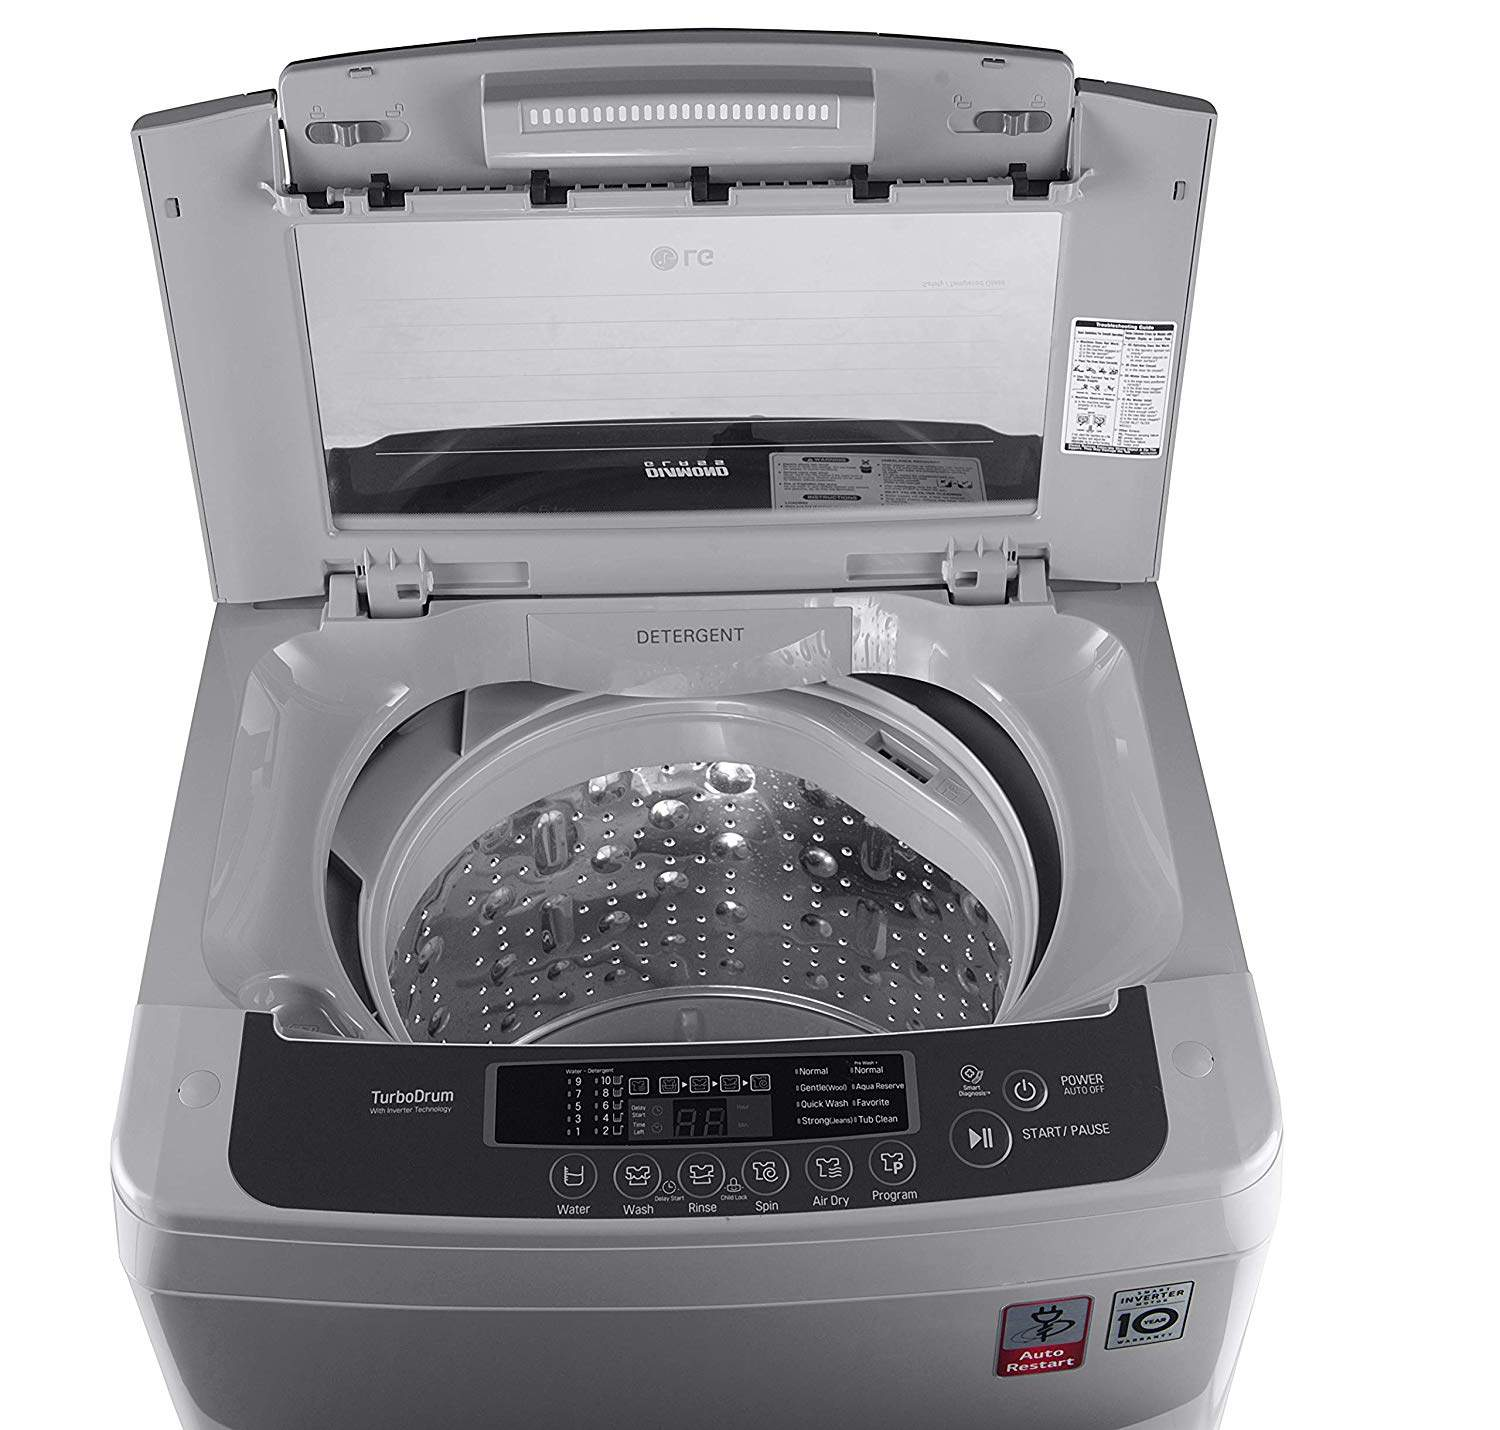 LG 6.5 Kg Fully Automatic Top Load Washing Machine Silver (T7569NDDLH)